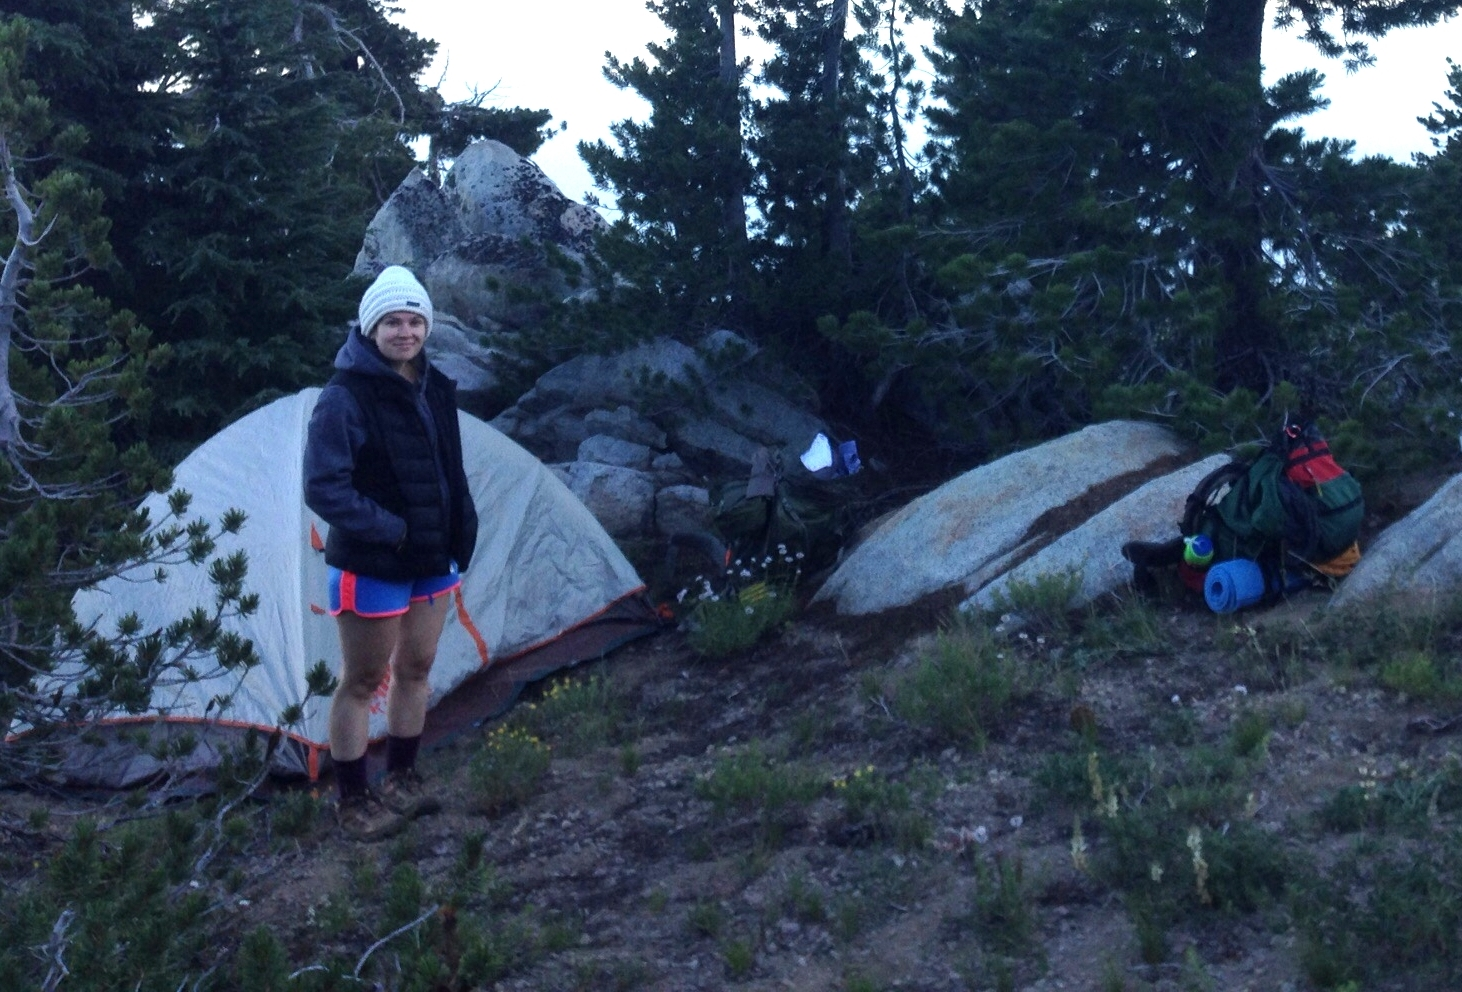 Our campsite for the night